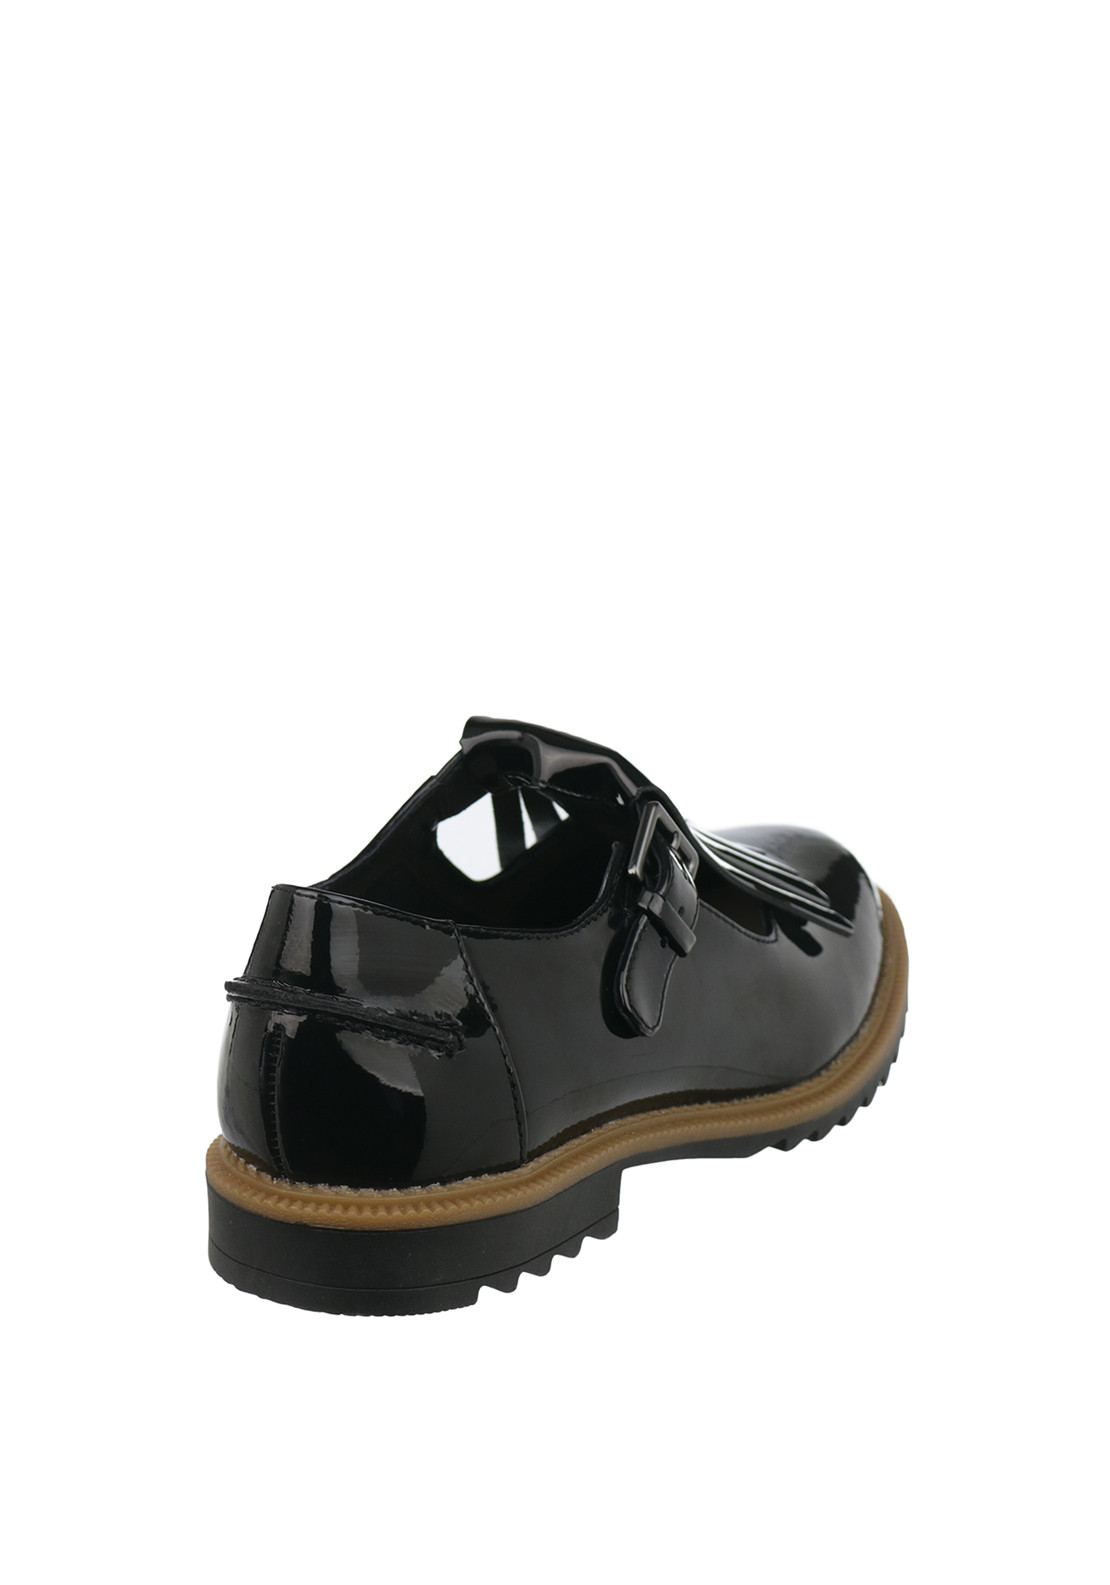 7b5ee107e884c Clarks Womens Griffin Mia Patent Leather Fringed Buckled Shoes, Black. Be  the first to review this product